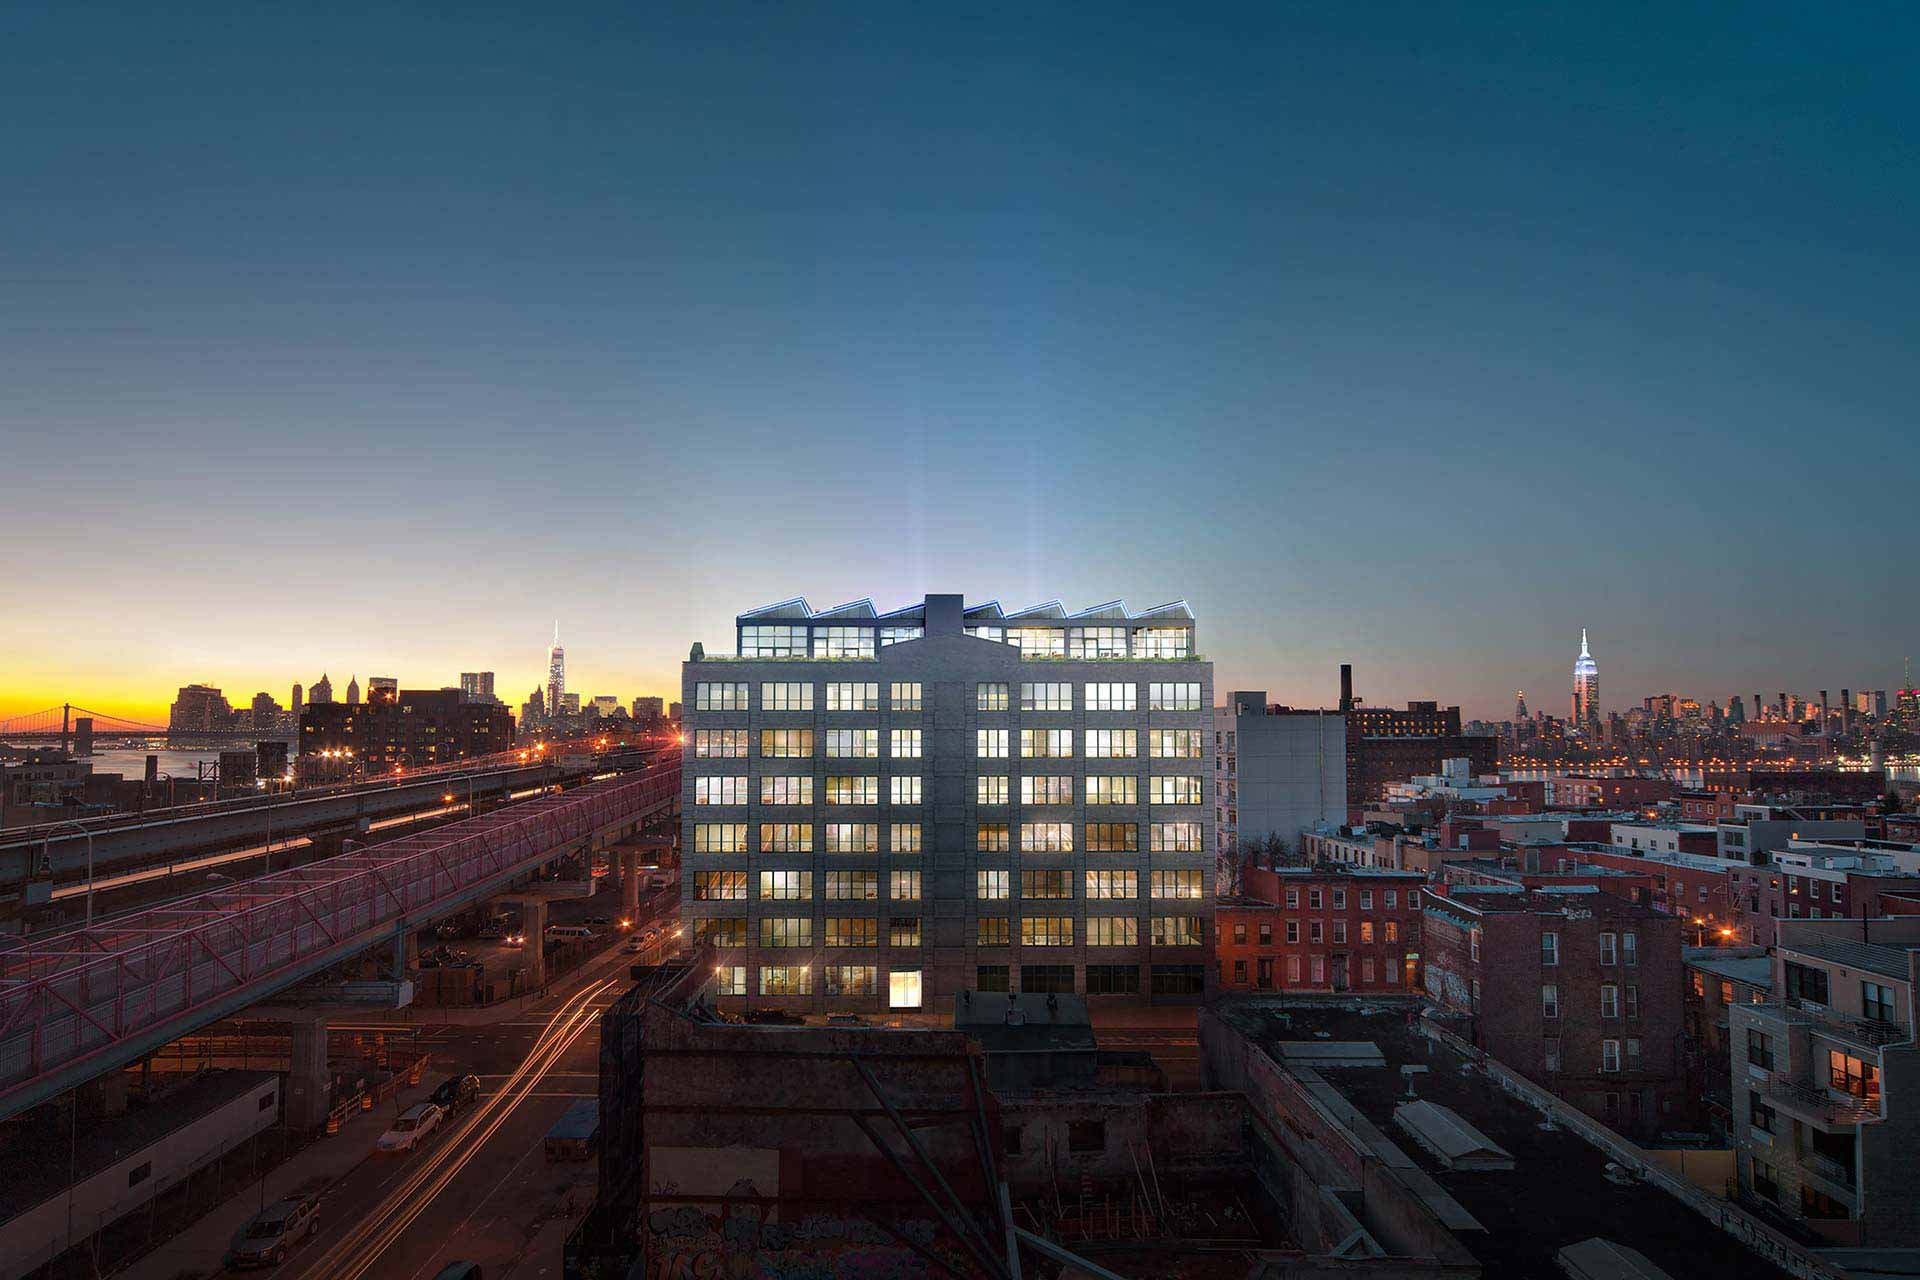 Dusk rendering of building in Williamsburg